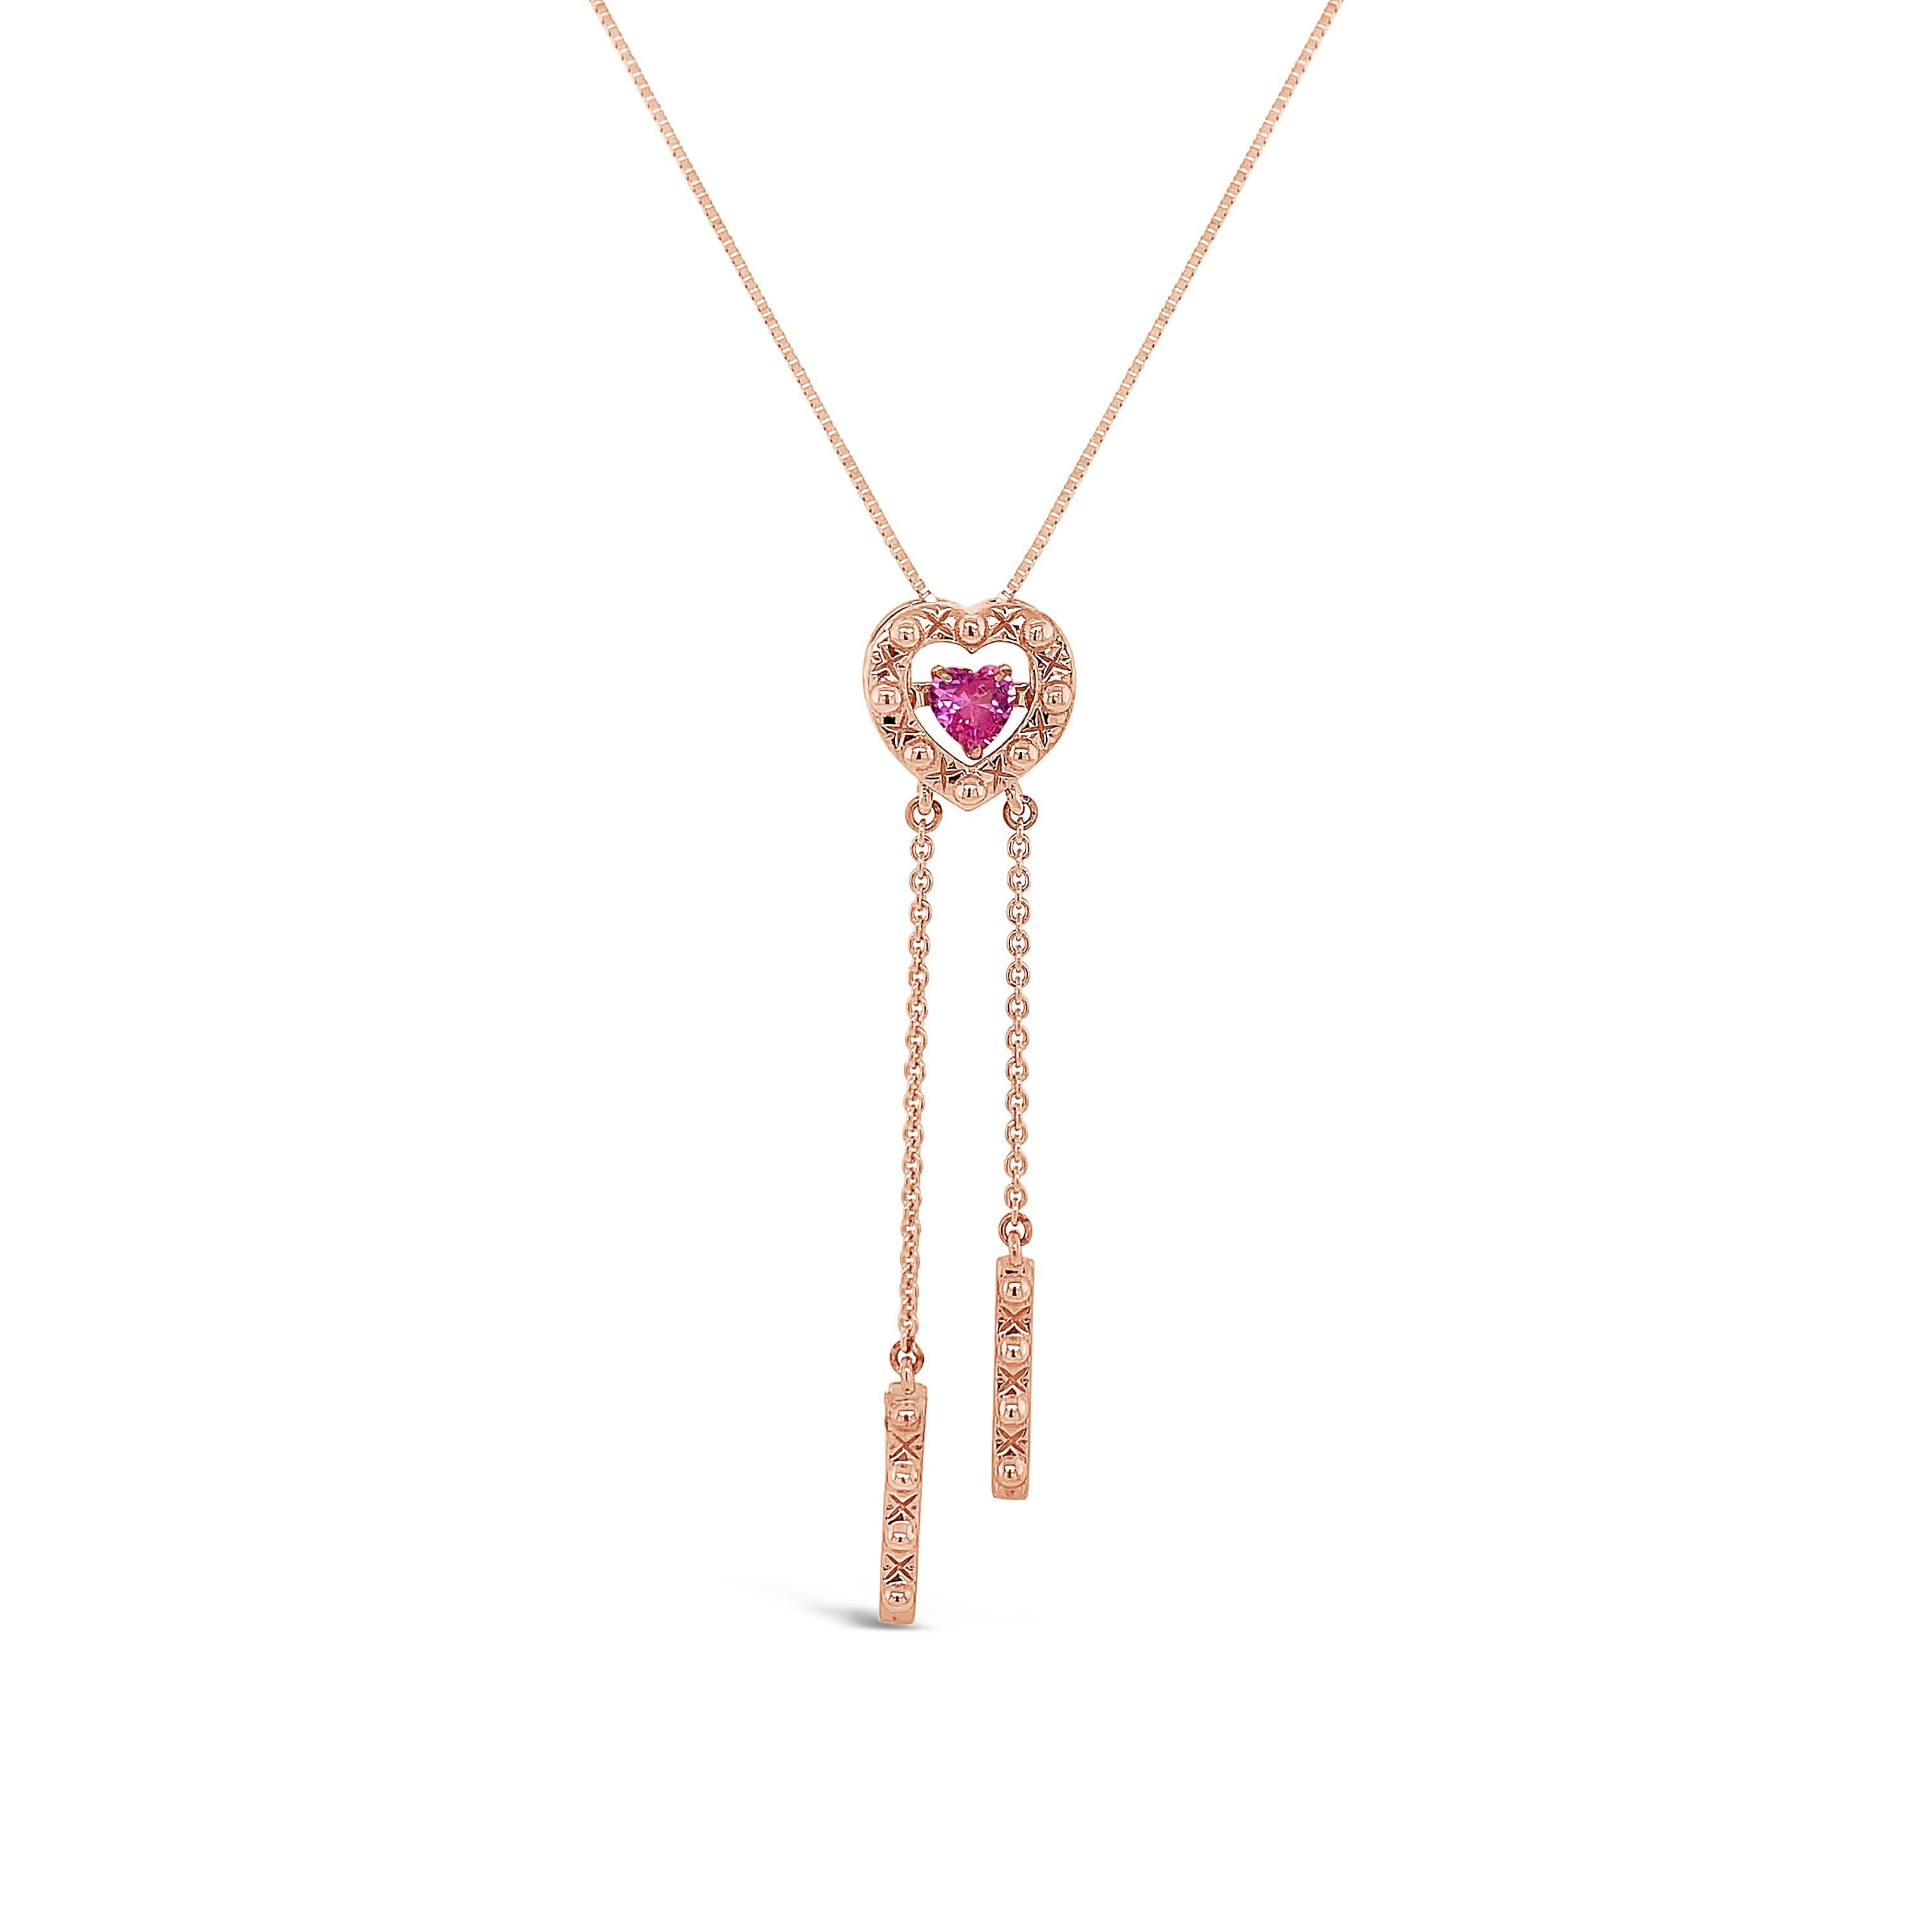 13_Carat_Pink_Sapphire_Heart_Pendant_in_10K_Rose_Gold_with_18_Chain